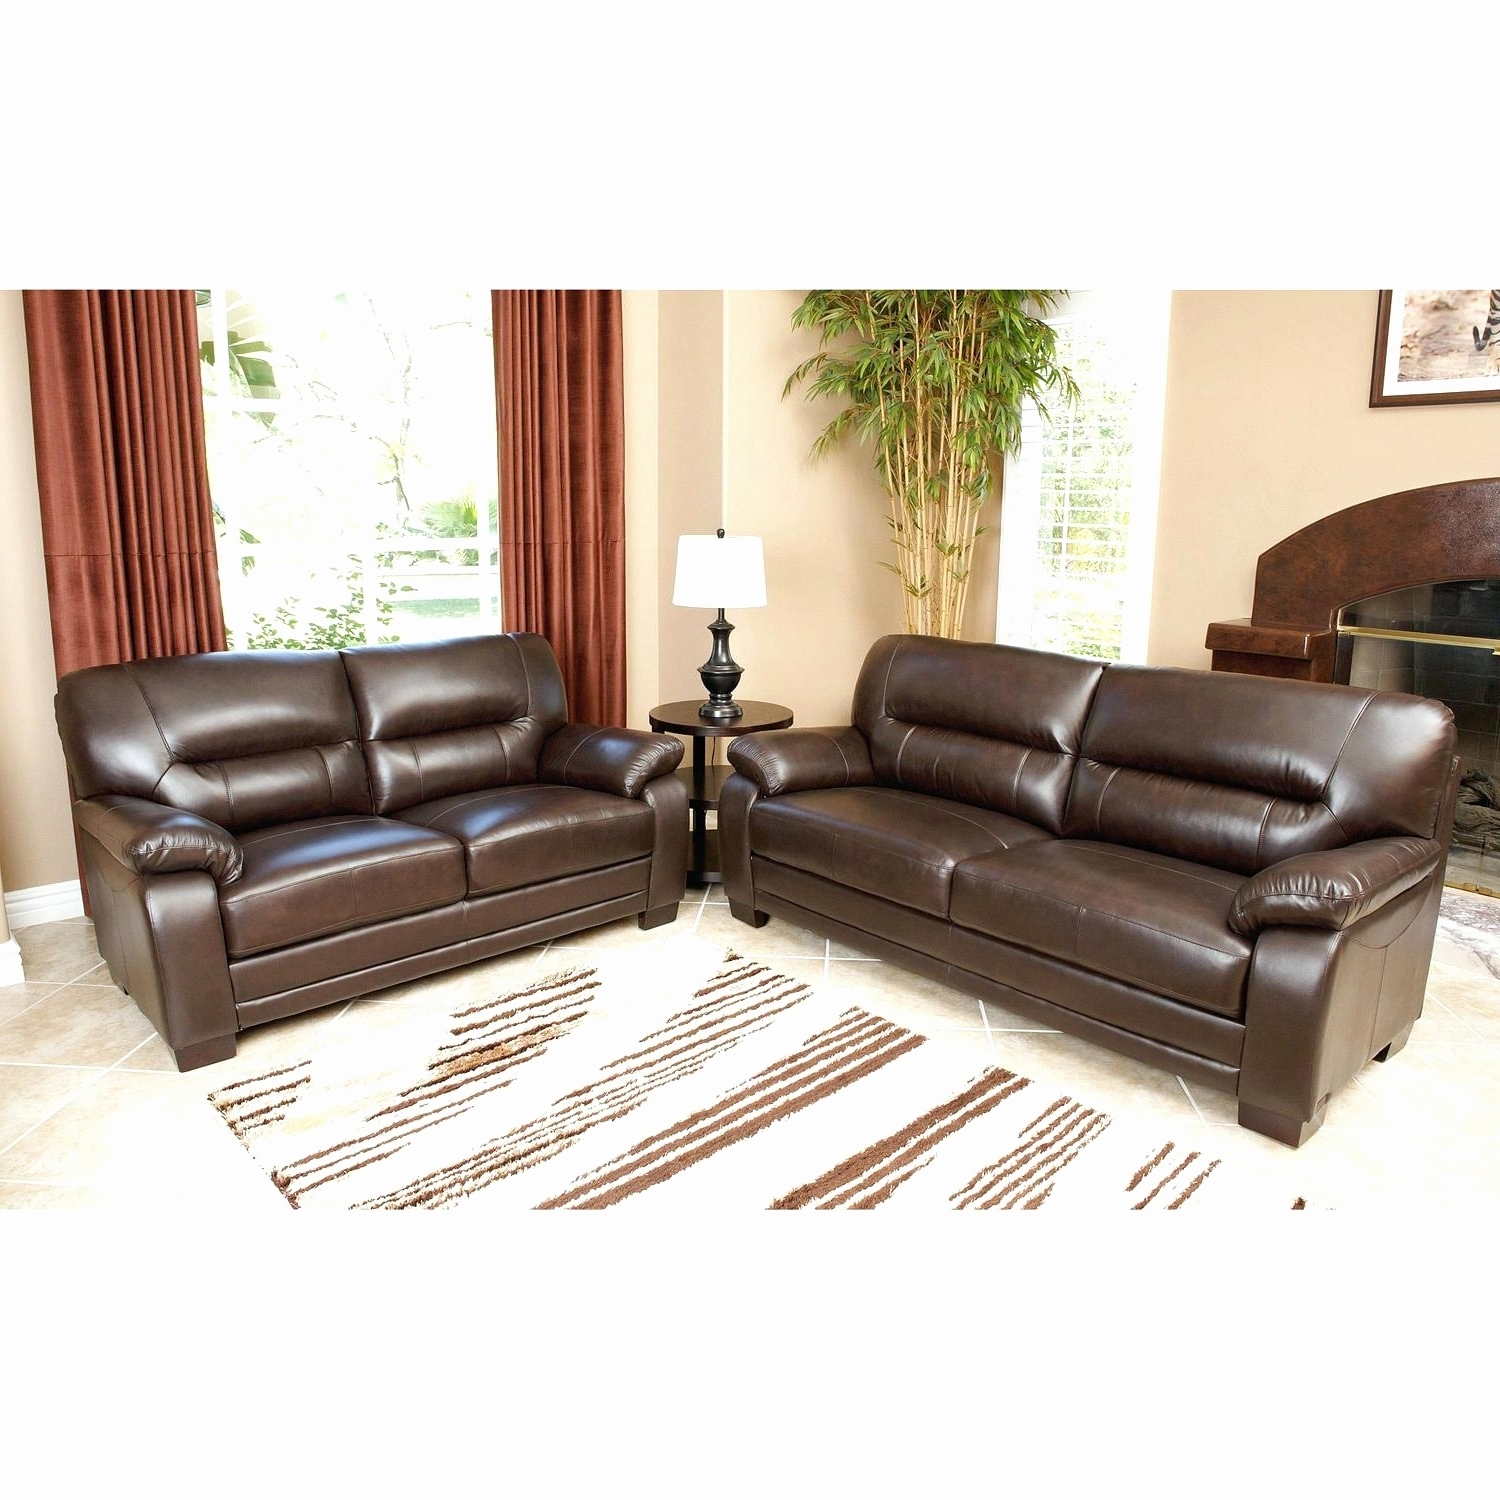 Well Known New Genuine Leather Couches For Sale 2018 – Couches And Sofas Ideas Pertaining To Sectional Sofas At Barrie (View 7 of 15)